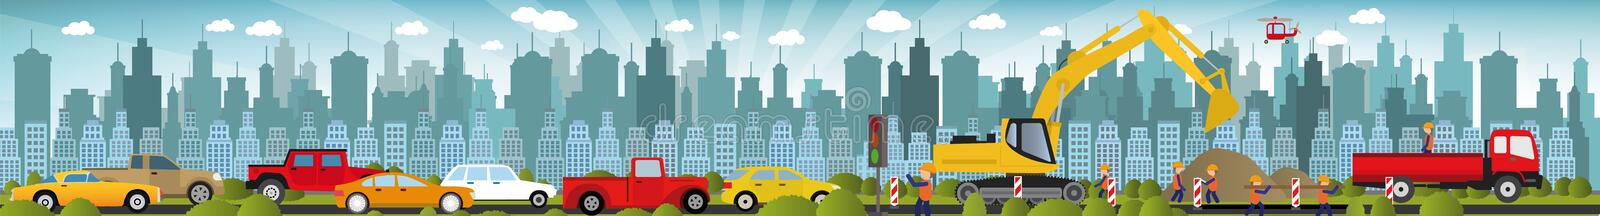 Work on roads (Traffic jam) royalty free illustration